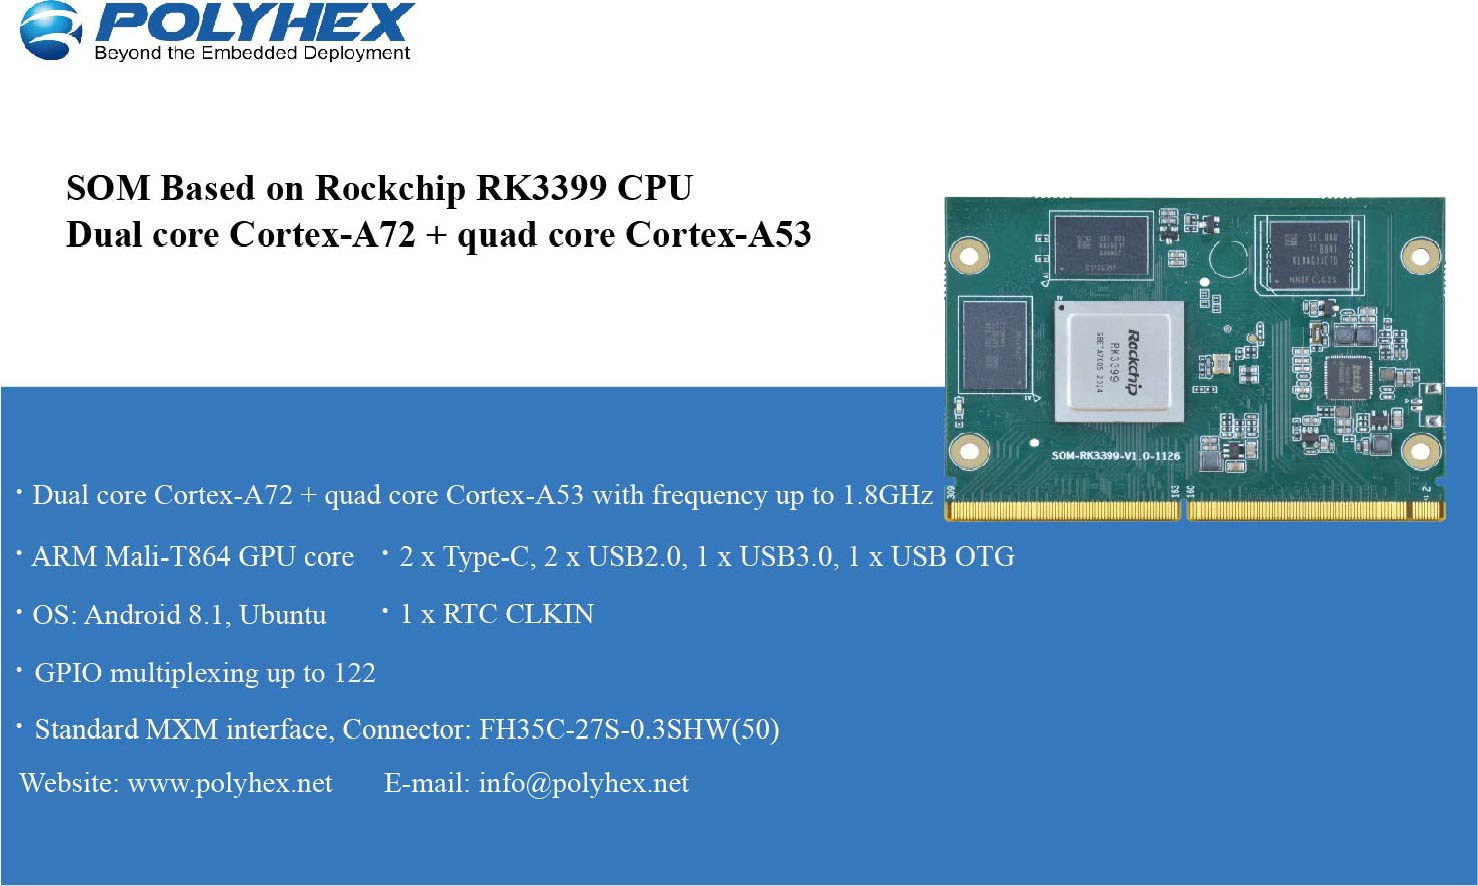 System on Module Based on Rockchip RK3399 CPU